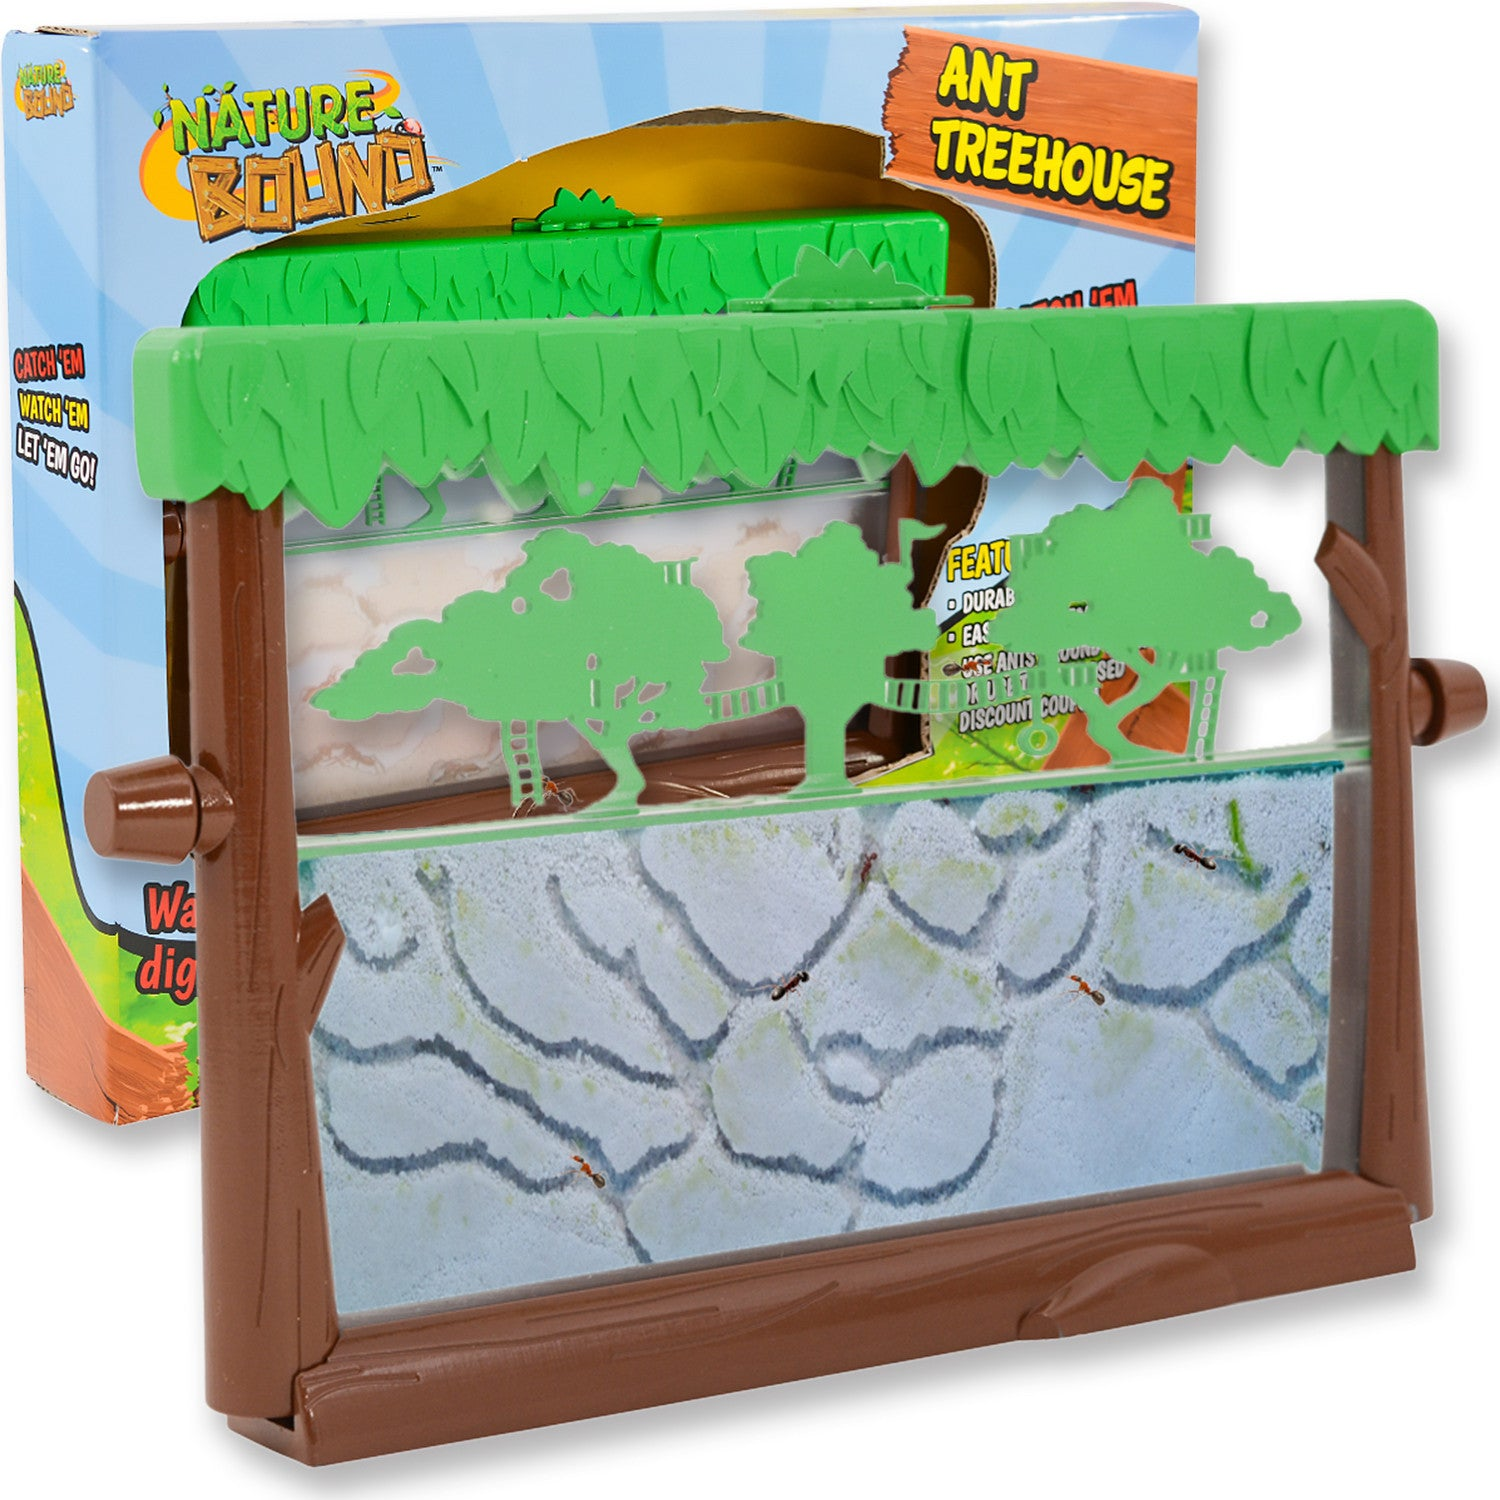 Nature Bound - Ant Treehouse Habitat Kit